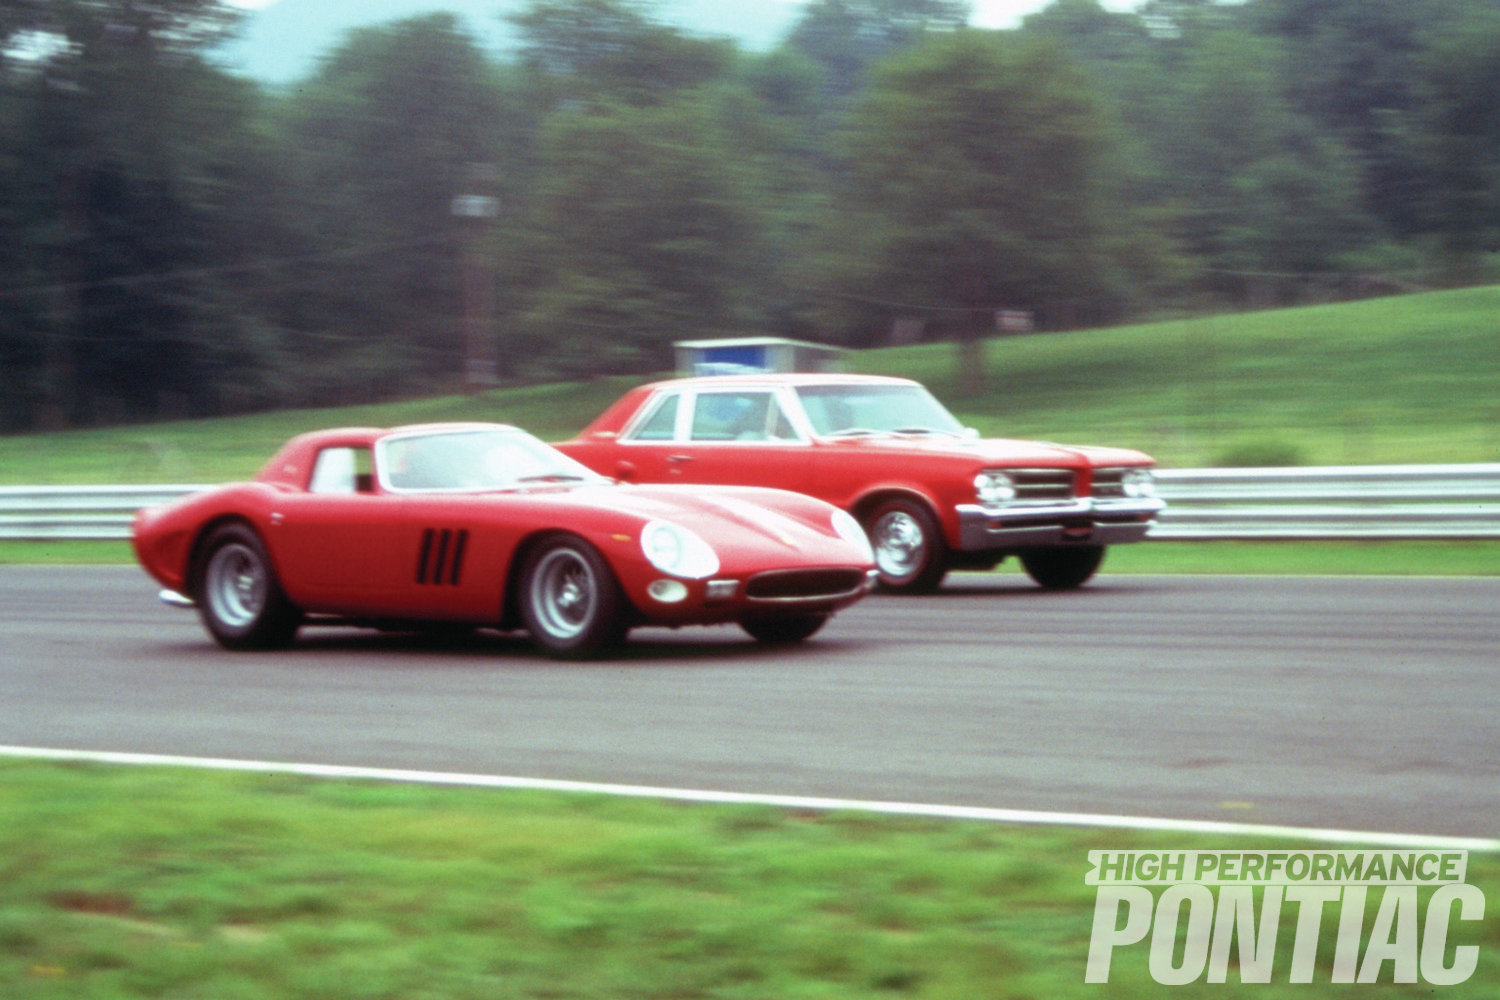 In 1995, former HPP editor R. George Ellis, together with the late Werner Pfister and the author, reunited the original Car and Driver '64 Royal Bobcat GTO with a genuine '64 Ferrari GTO at Lime Rock. Kit Foster from Special Interest Autos (now Hemmings Classic Cars) was also there, as was then-GTOAA president Stan Rarden and former Pontiac ad executive Jim Wangers. Even though the GTO was set up for drag racing, it was still used, as it was the very car from the Mar. '64 issue. The results were predictable—the Pontiac was a rocket on the straightaways, while the Ferrari went around the corners like it was on rails. The sound of that 421 and the V-12 duking it out is something we will never forget.